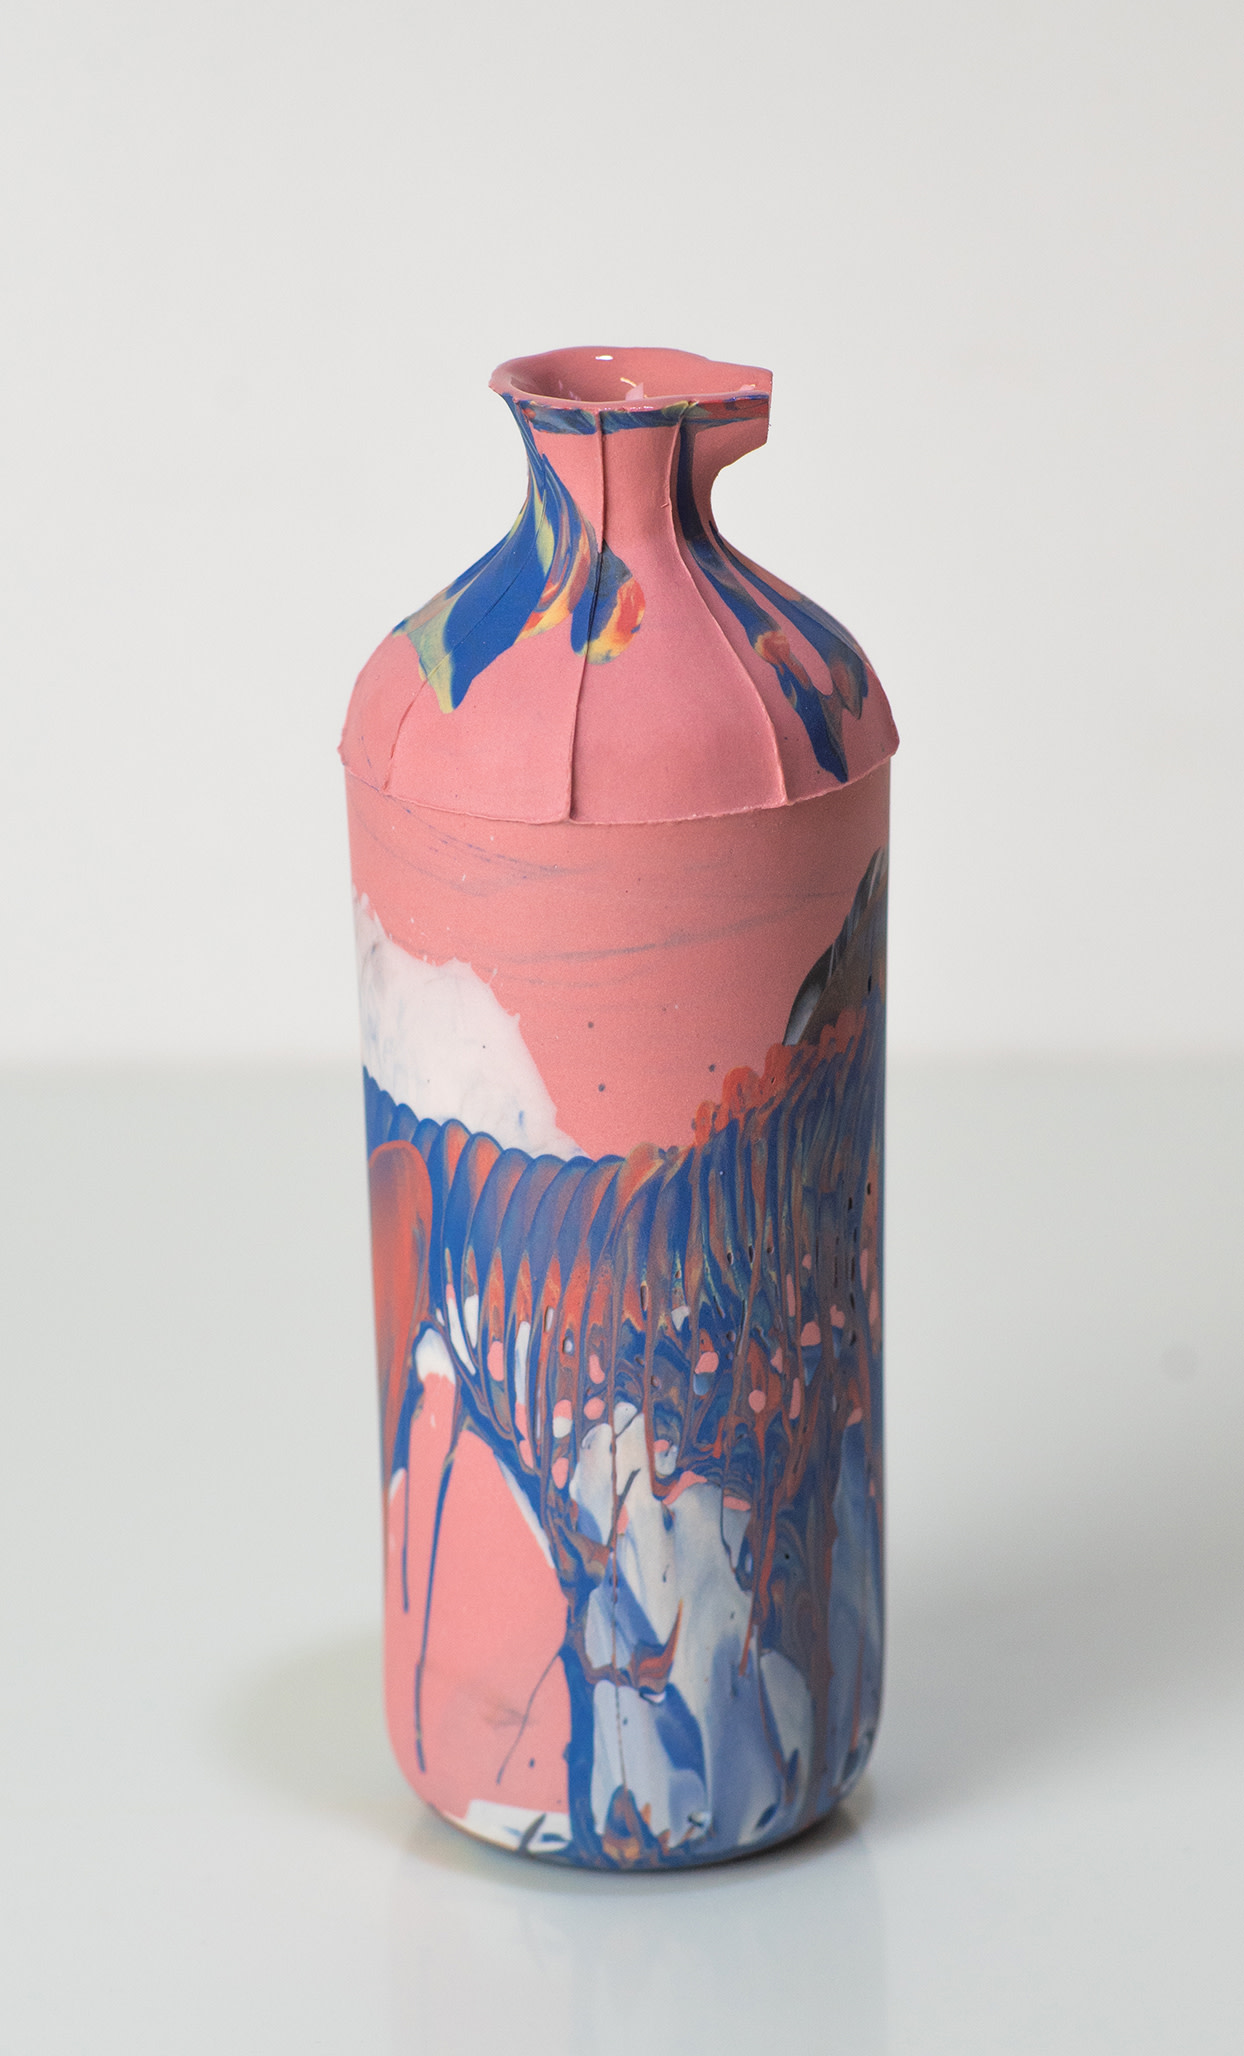 <span class=&#34;link fancybox-details-link&#34;><a href=&#34;/artists/219-james-pegg/works/6079-james-pegg-tall-bottle-2019/&#34;>View Detail Page</a></span><div class=&#34;artist&#34;><strong>James Pegg</strong></div> <div class=&#34;title&#34;><em>Tall Bottle</em>, 2019</div> <div class=&#34;medium&#34;>action-cast stained porcelain with glazed interior</div> <div class=&#34;dimensions&#34;>h 17 cm</div><div class=&#34;price&#34;>£120.00</div><div class=&#34;copyright_line&#34;>OwnArt: £ 12 x 10 Months, 0% APR </div>